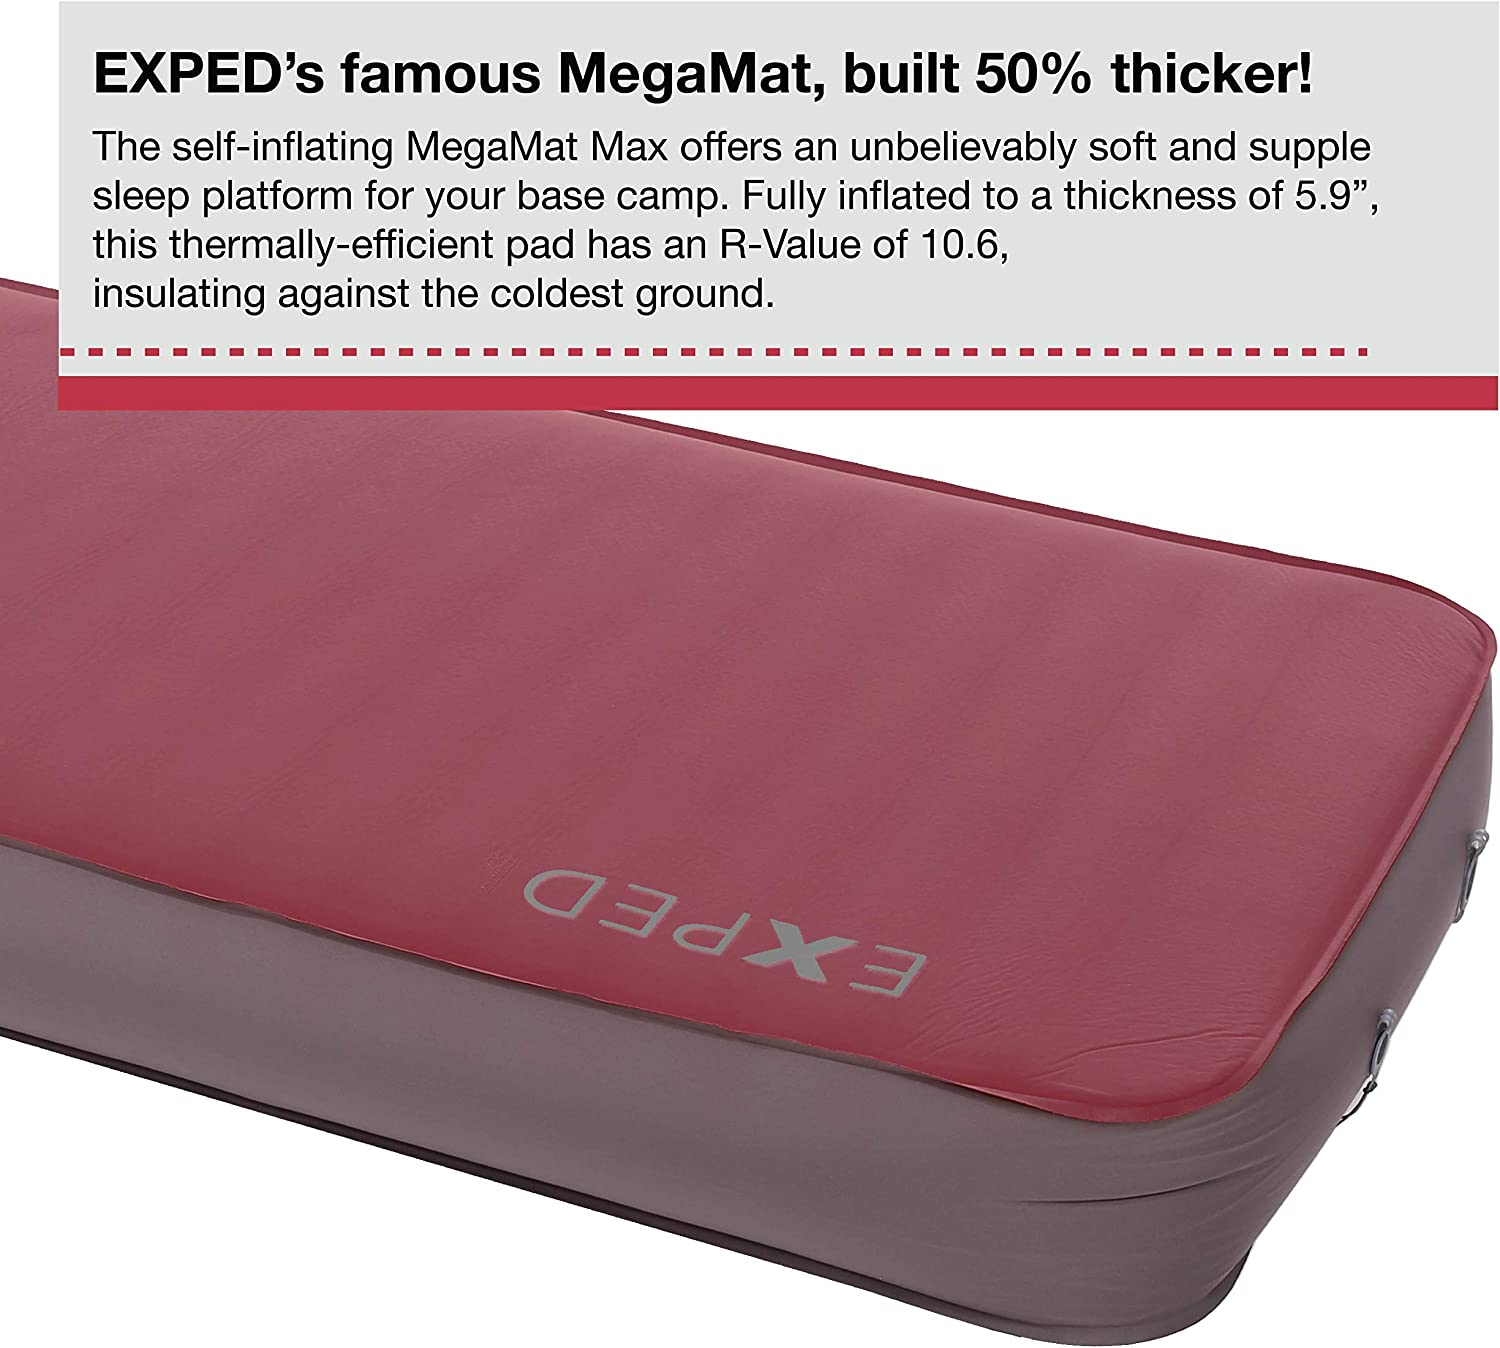 Exped MegaMat Duo 10 Insulated Self-Inflating Sleeping Pad